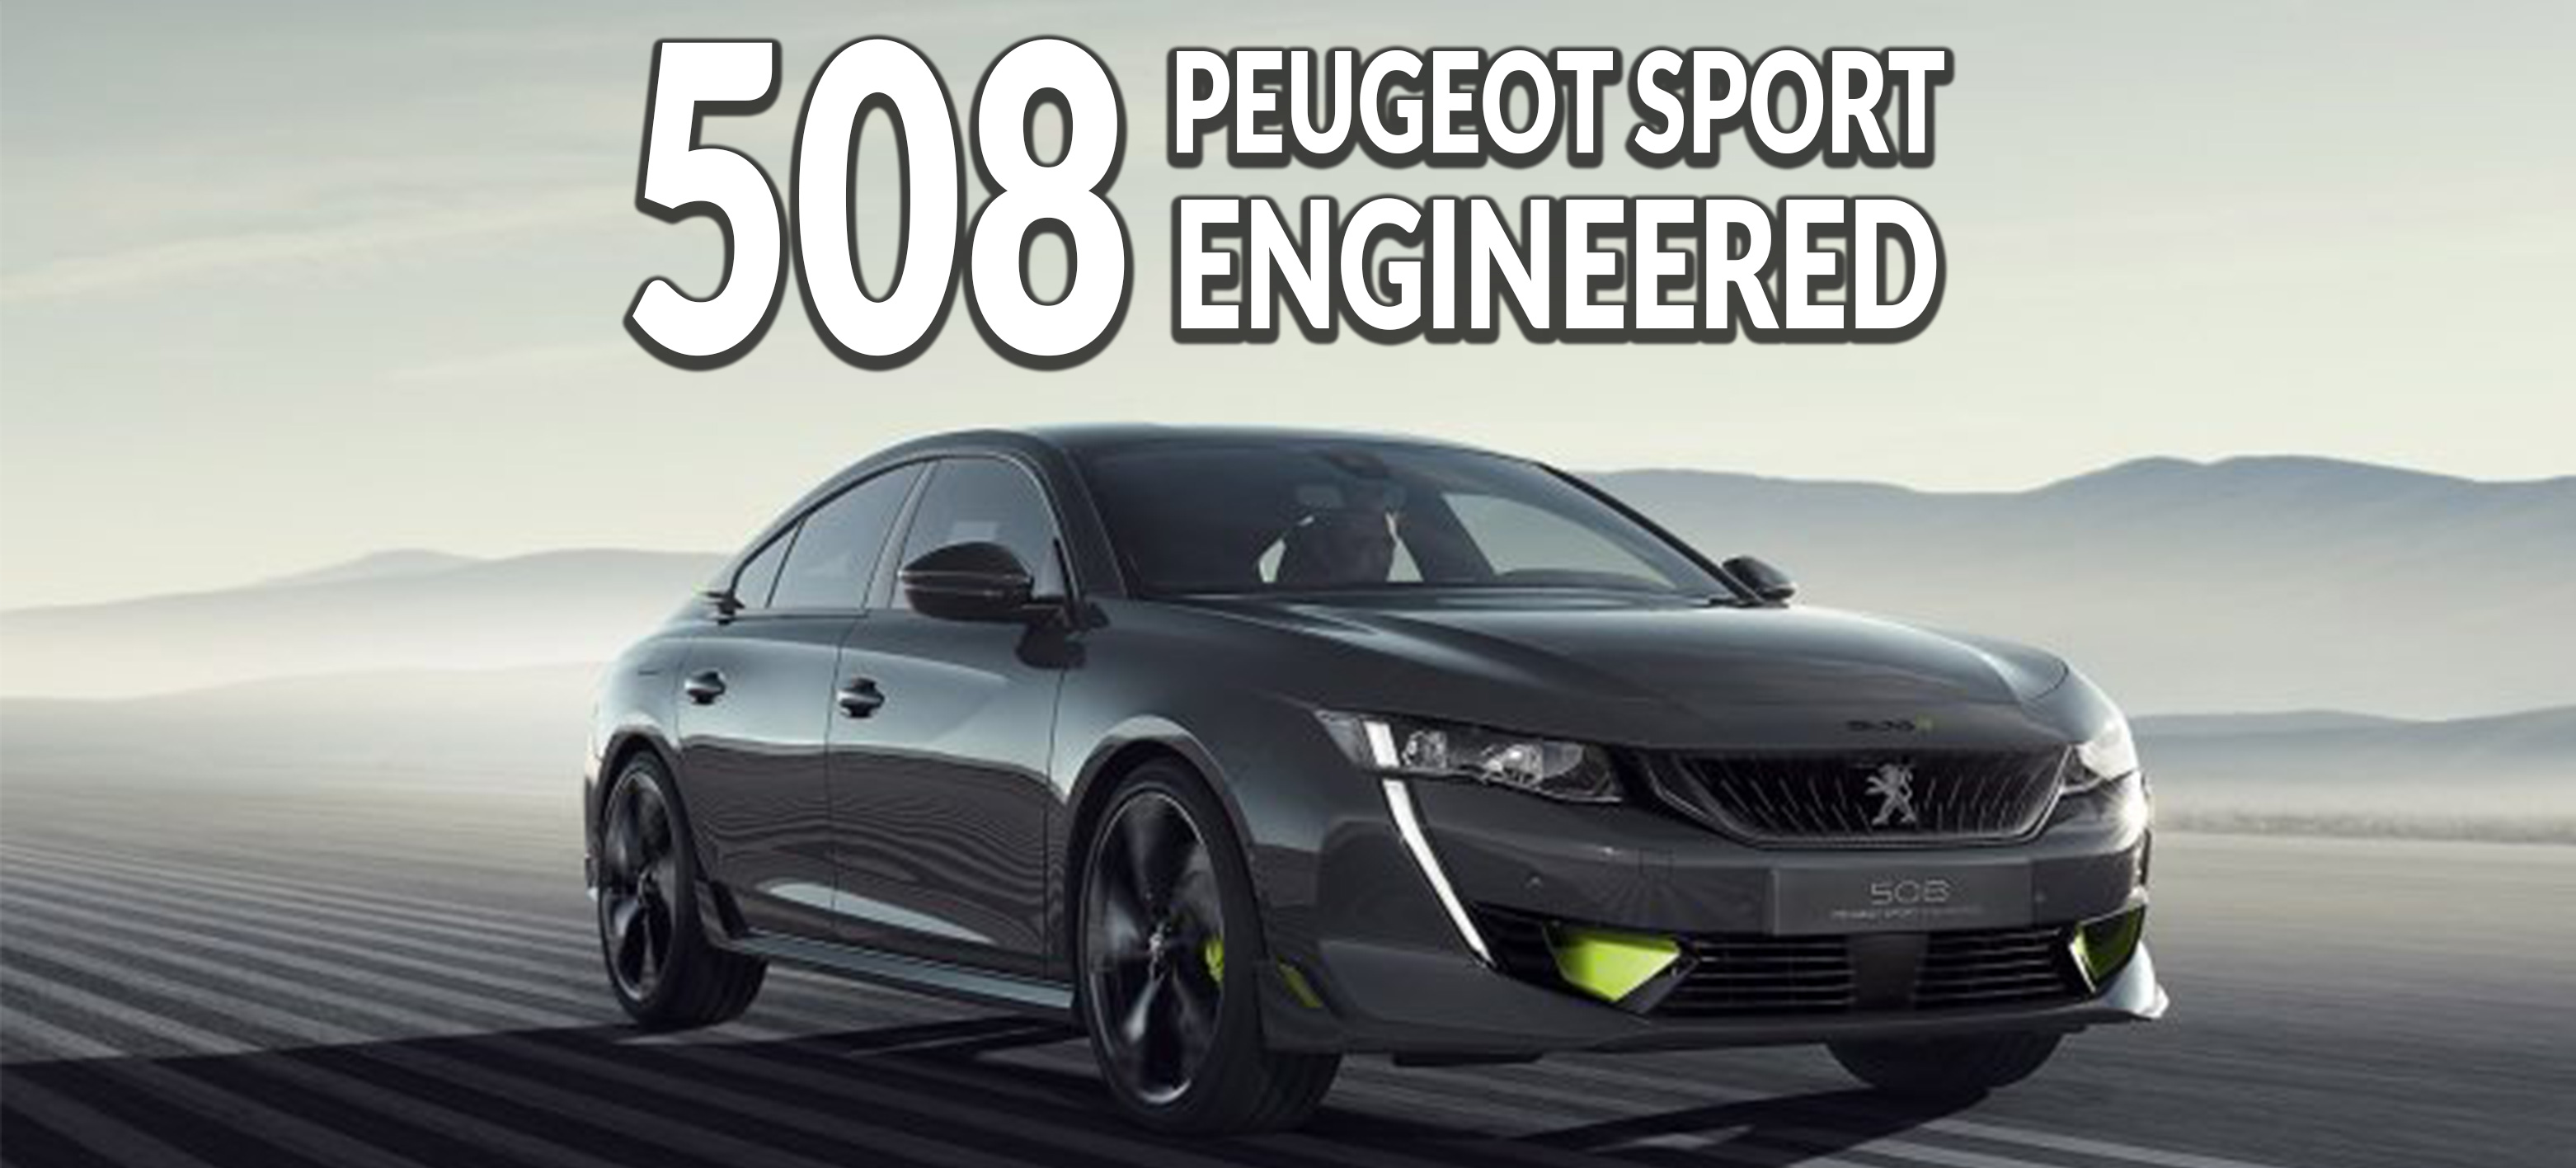 508 Peugeot Sport Engineered : élégante et performante